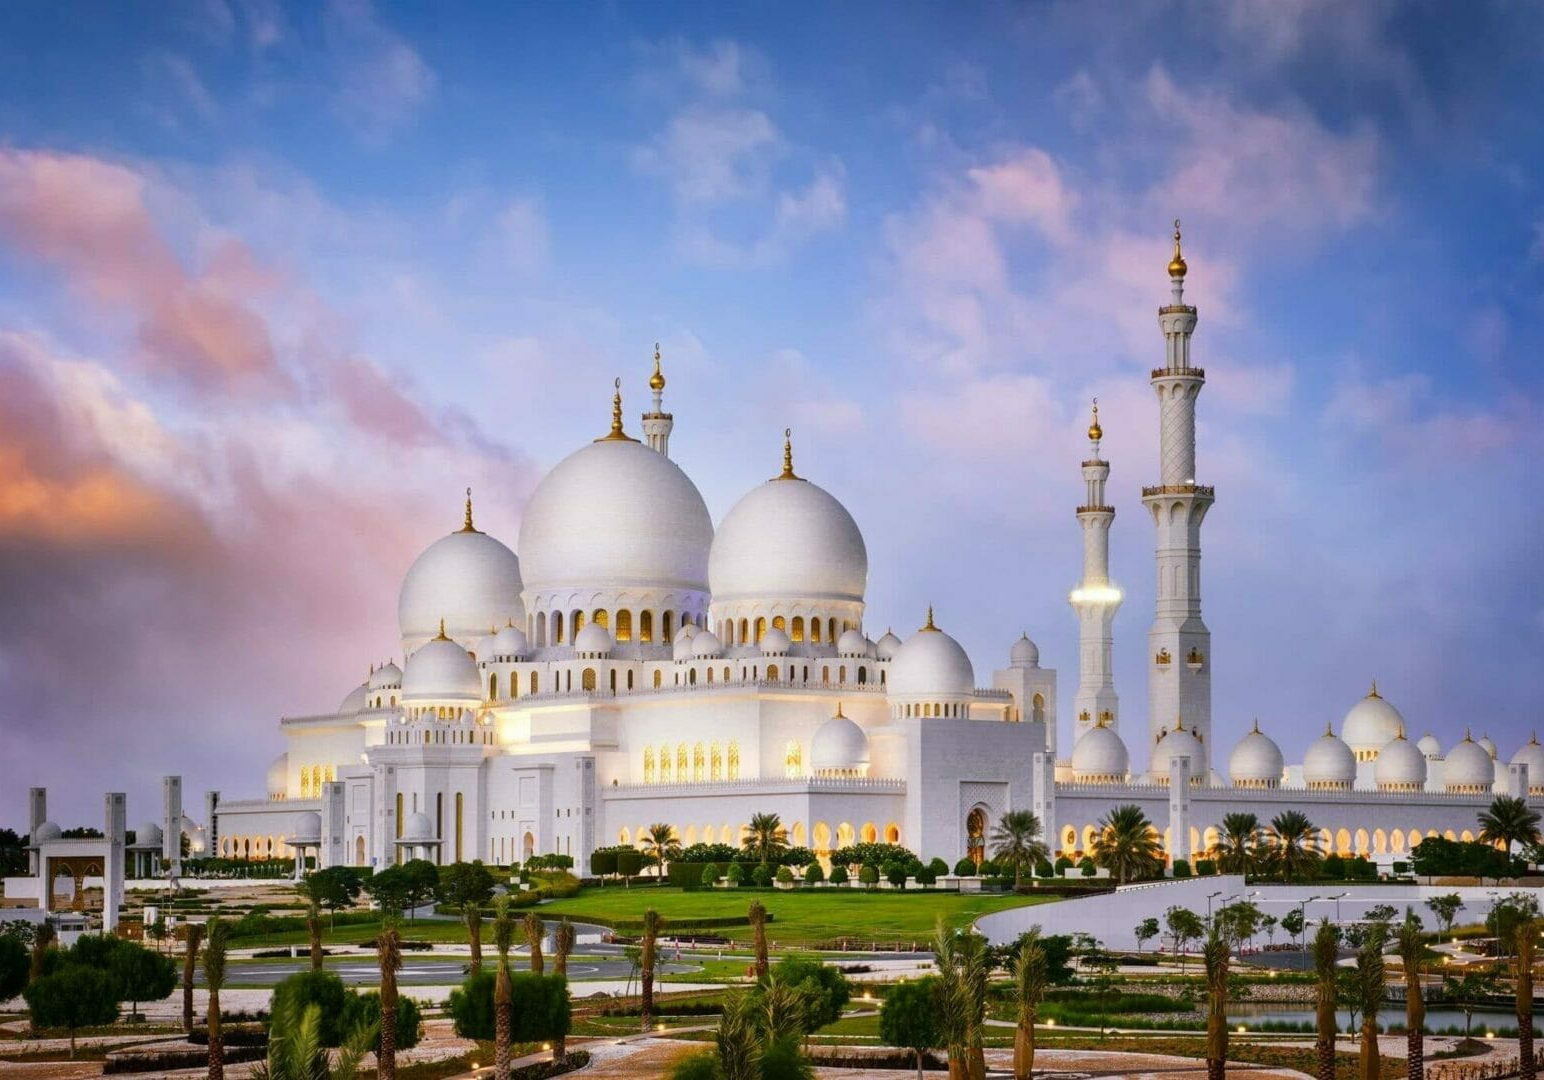 Sheikh Zayed Grand Mosque-Abu Dhabi-UAE-Must See in Abu Dhabi-Visit Abu Dhabi- Tour Abu Dhabi- Egypt&Beyond